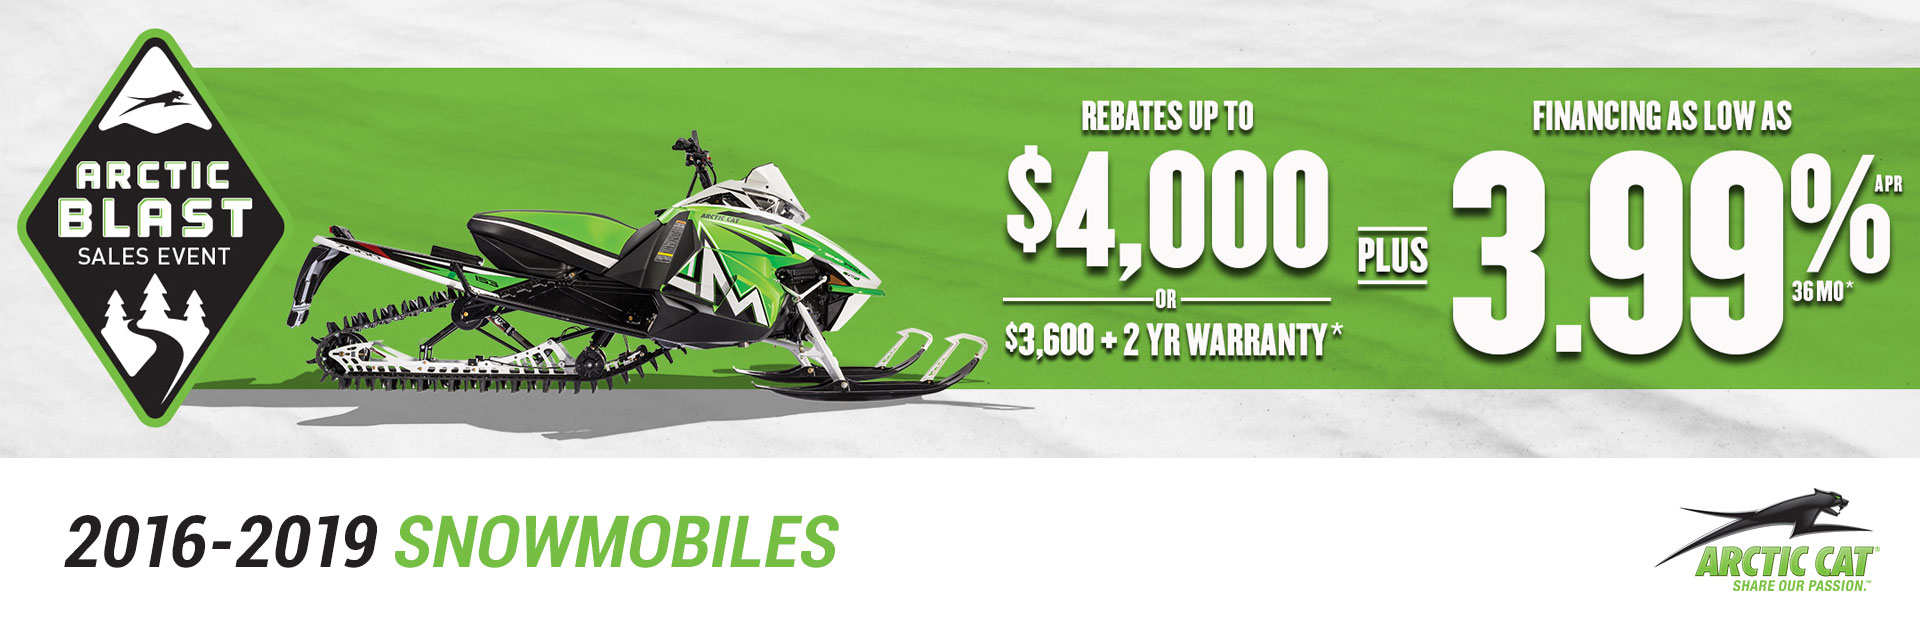 Arctic Cat: Arctic Blast Sales Event 2016-2019 Snowmobiles